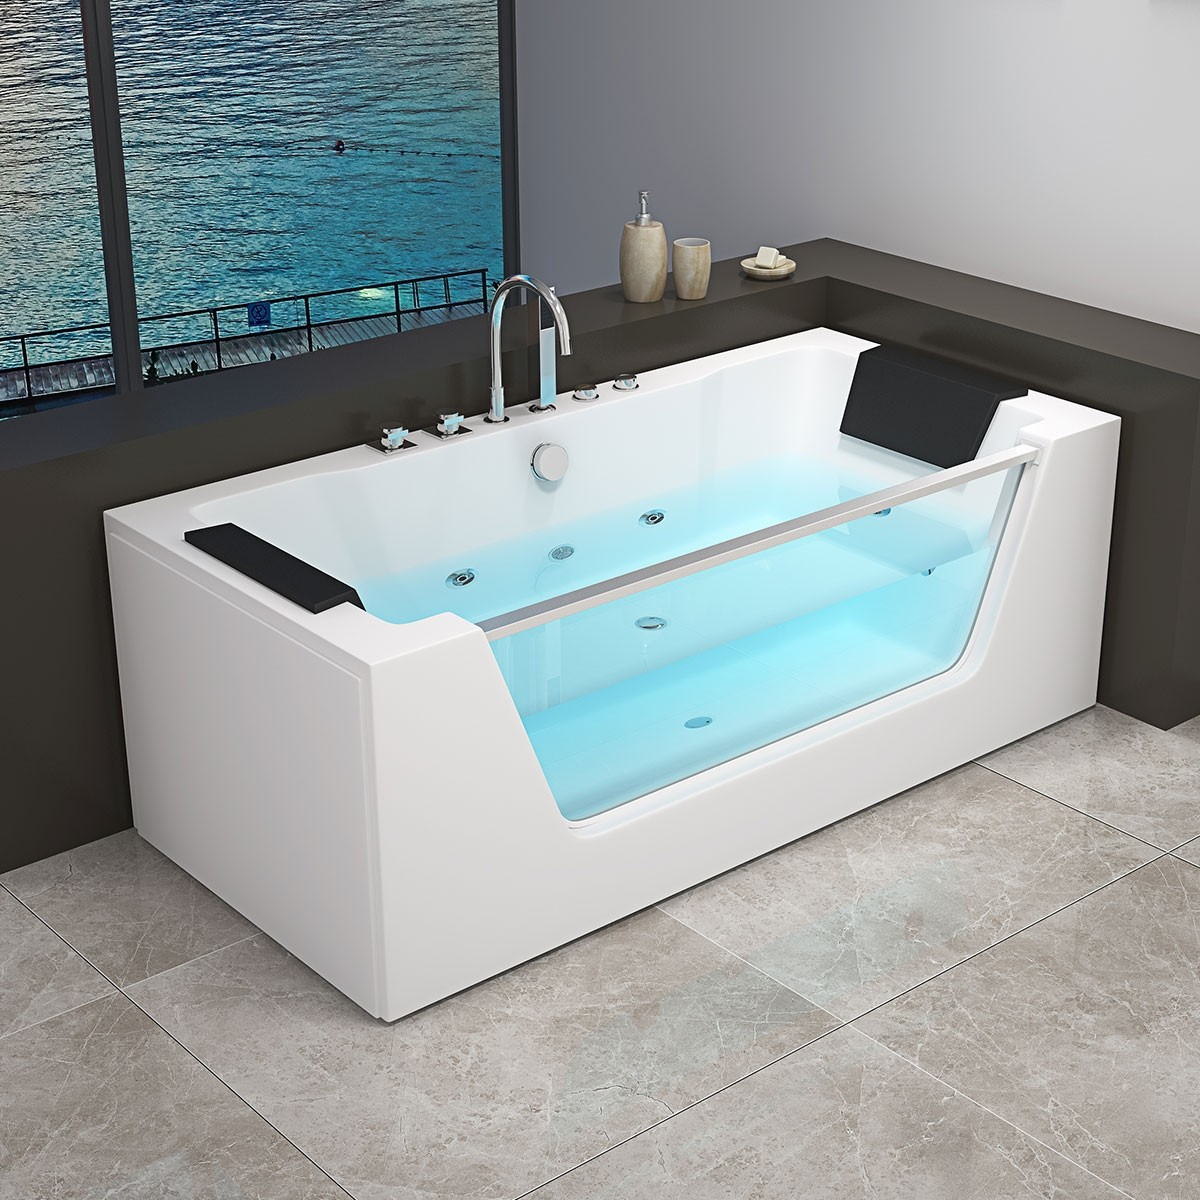 Decoraport 71 x 36 In Whirlpool Tub with Heater, Ozone (DK-RL-6180S)